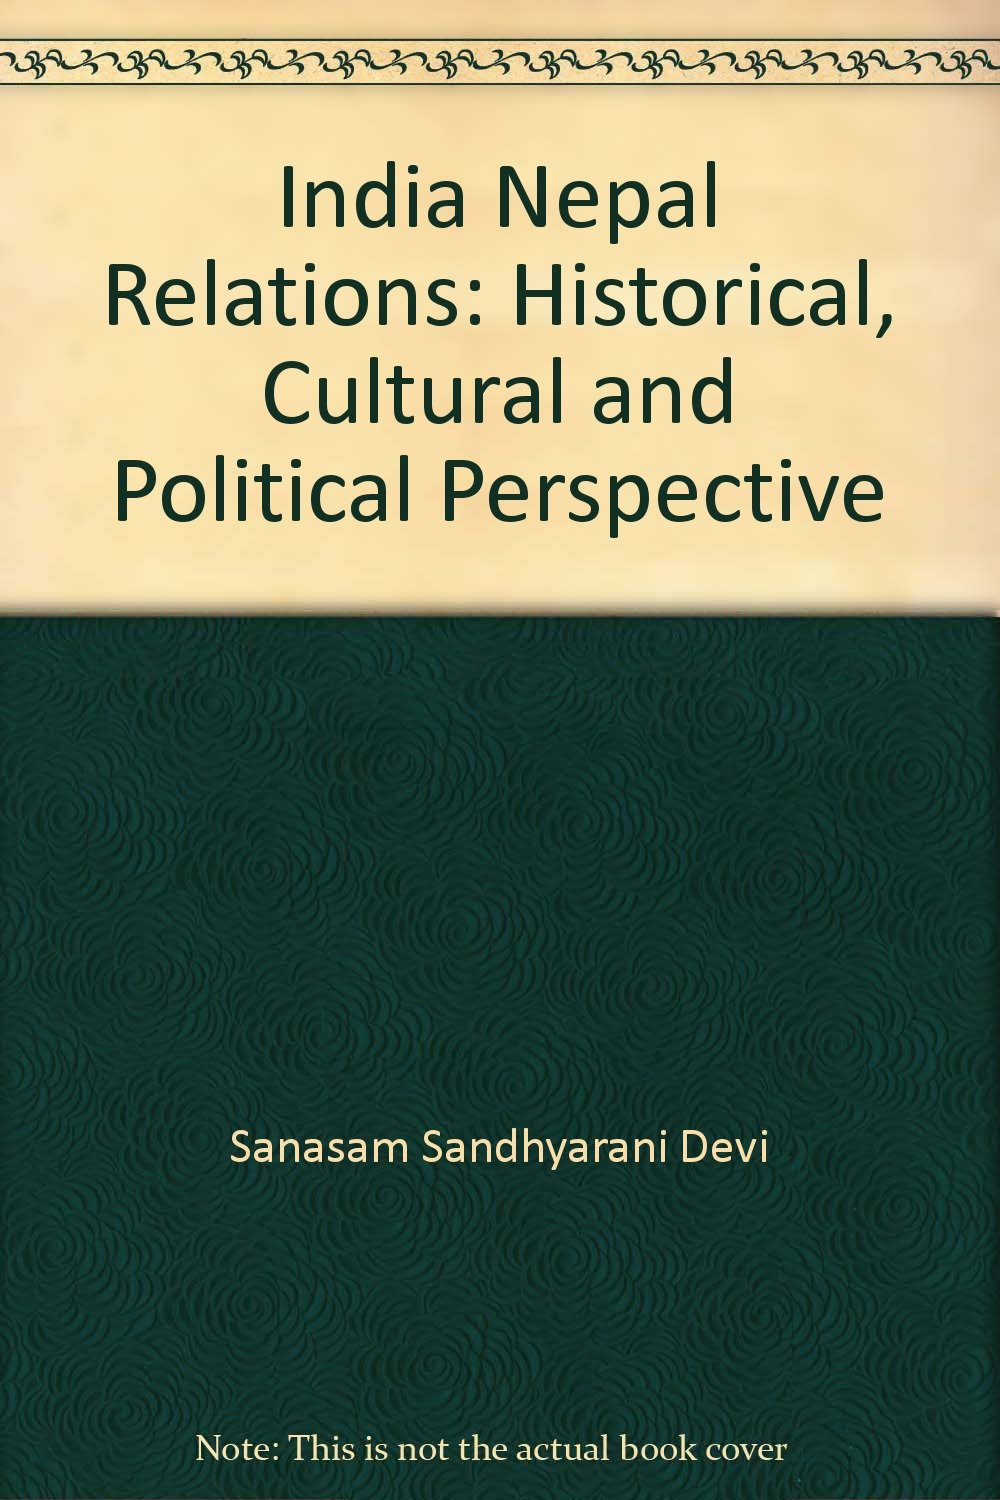 India Nepal Relations : Historical, Cultural and Political Perspective